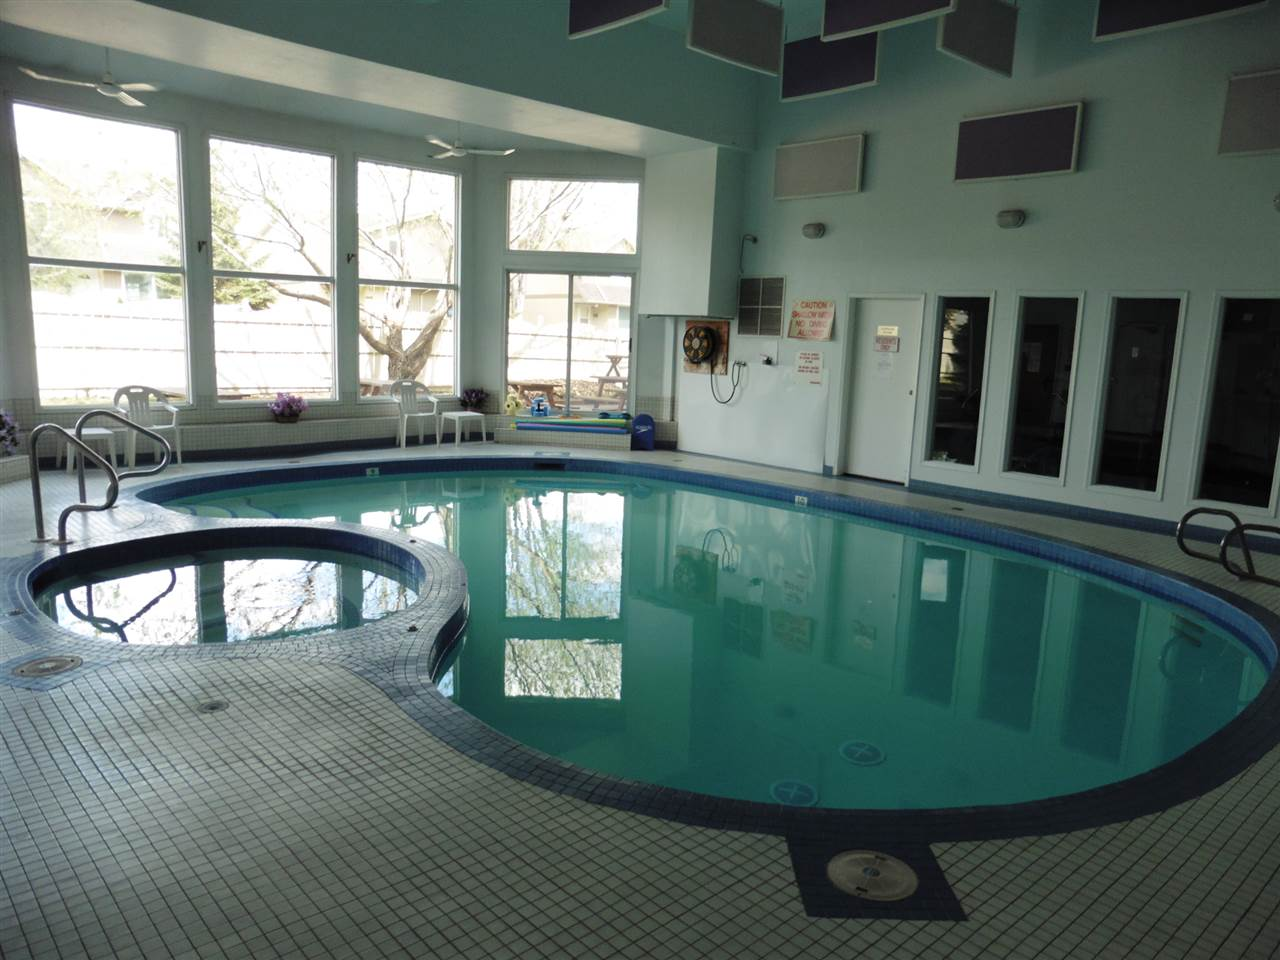 Lovely indoor swimming pool with hot tub and sauna.  Also a large patio area outside the pool area.